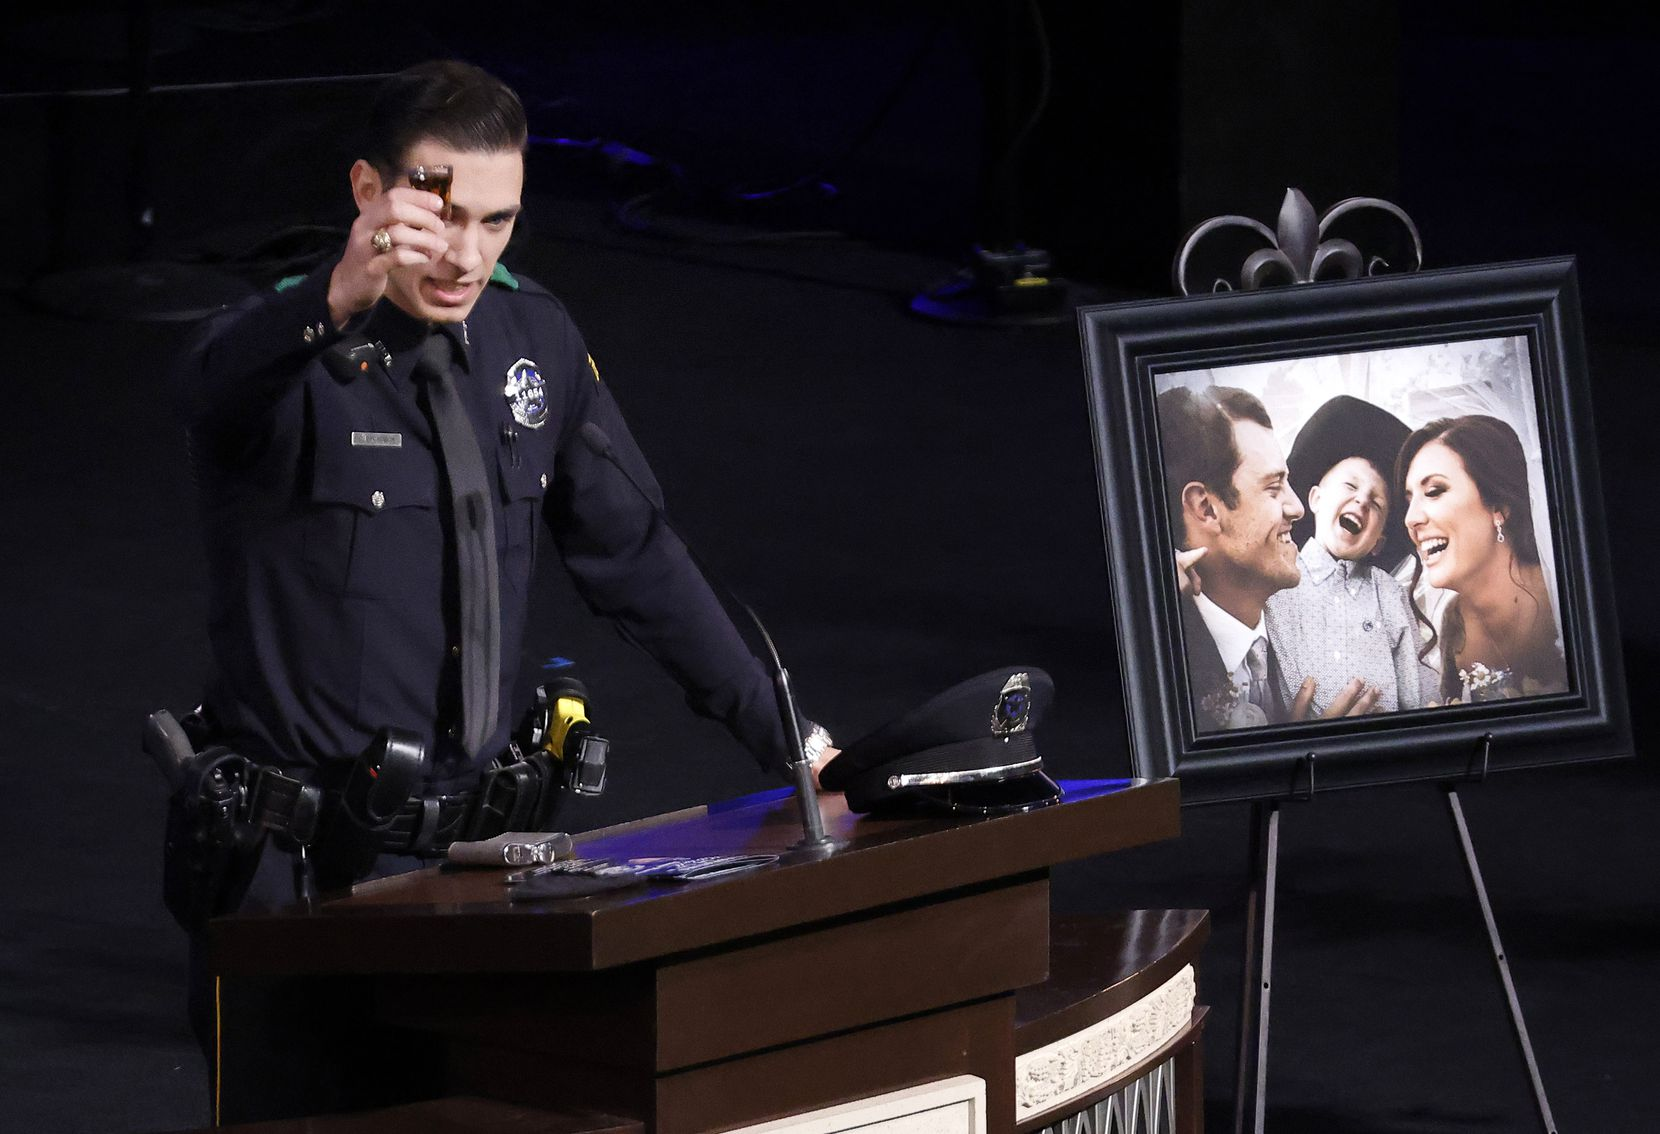 Dallas Police officer Colton Upchurch raises a shot glass of whiskey in his close friends name during the funeral service for Dallas Police officer Mitchell Penton at Prestonwood Baptist Church in Plano, Monday, February 22, 2021. The two were close friends from the time they met at recruit training. Upchurch still had an old flask of whiskey left in it from when they were together years ago. Penton was killed Saturday, Feb. 13, 2021, in a crash involving a drunk driving suspect.(Tom Fox/The Dallas Morning News)